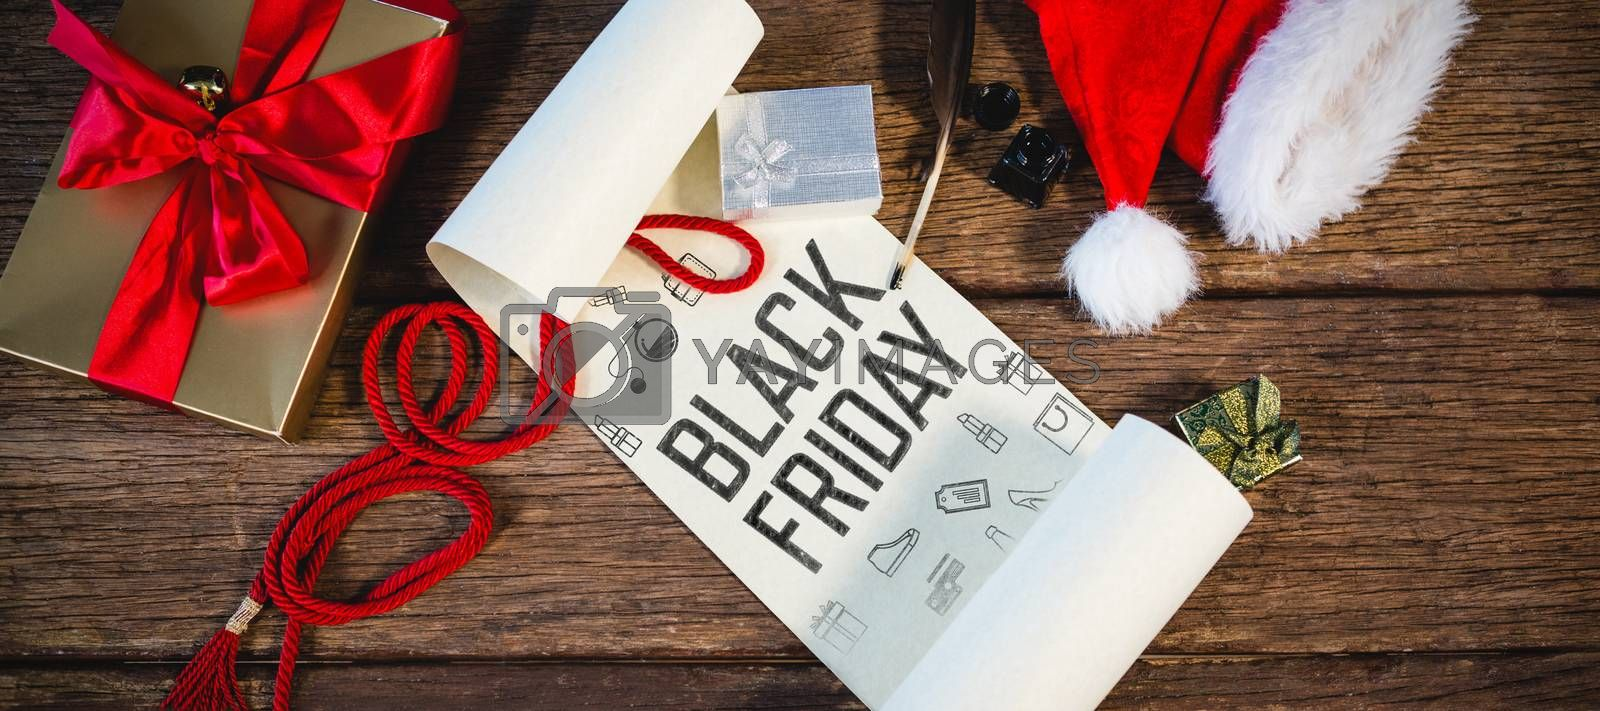 Black friday advert against wrapped gift, santa hat, diary and quill pen on wooden table in living room